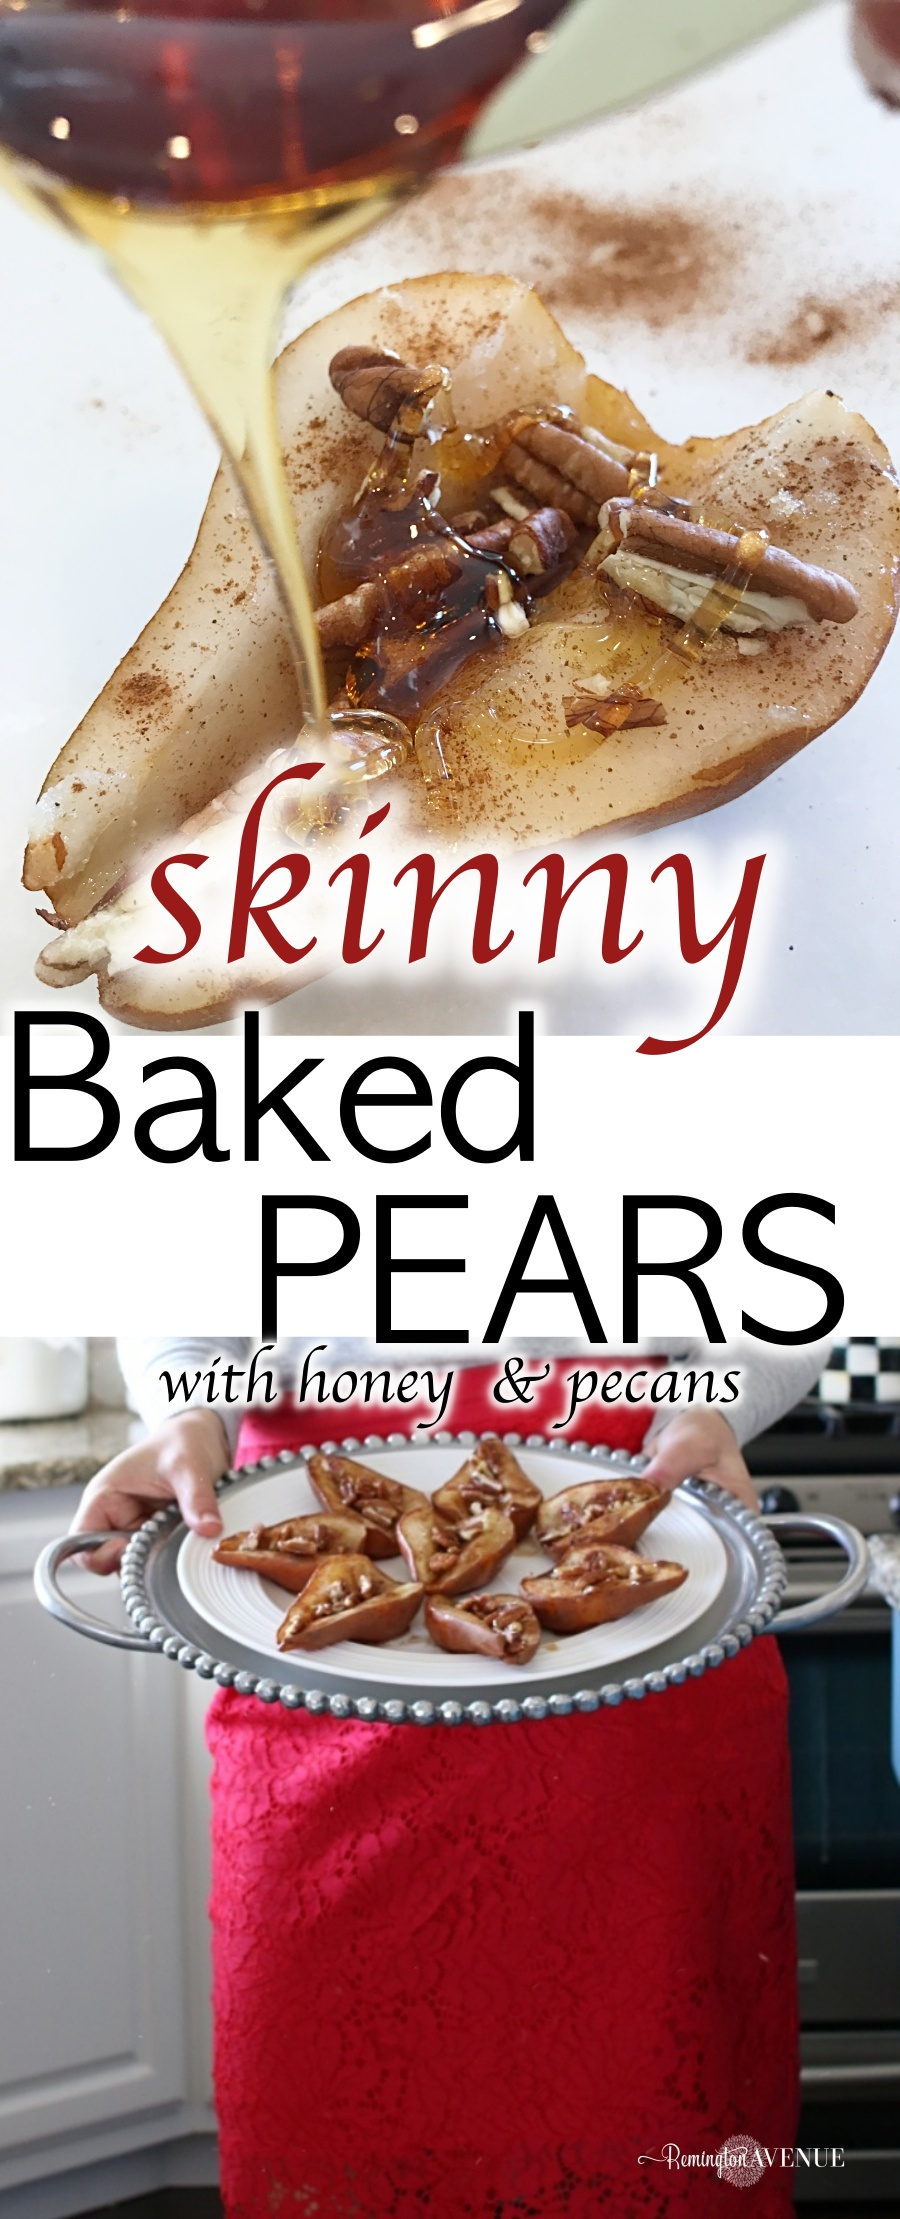 skinny baked pears with honey and pecans